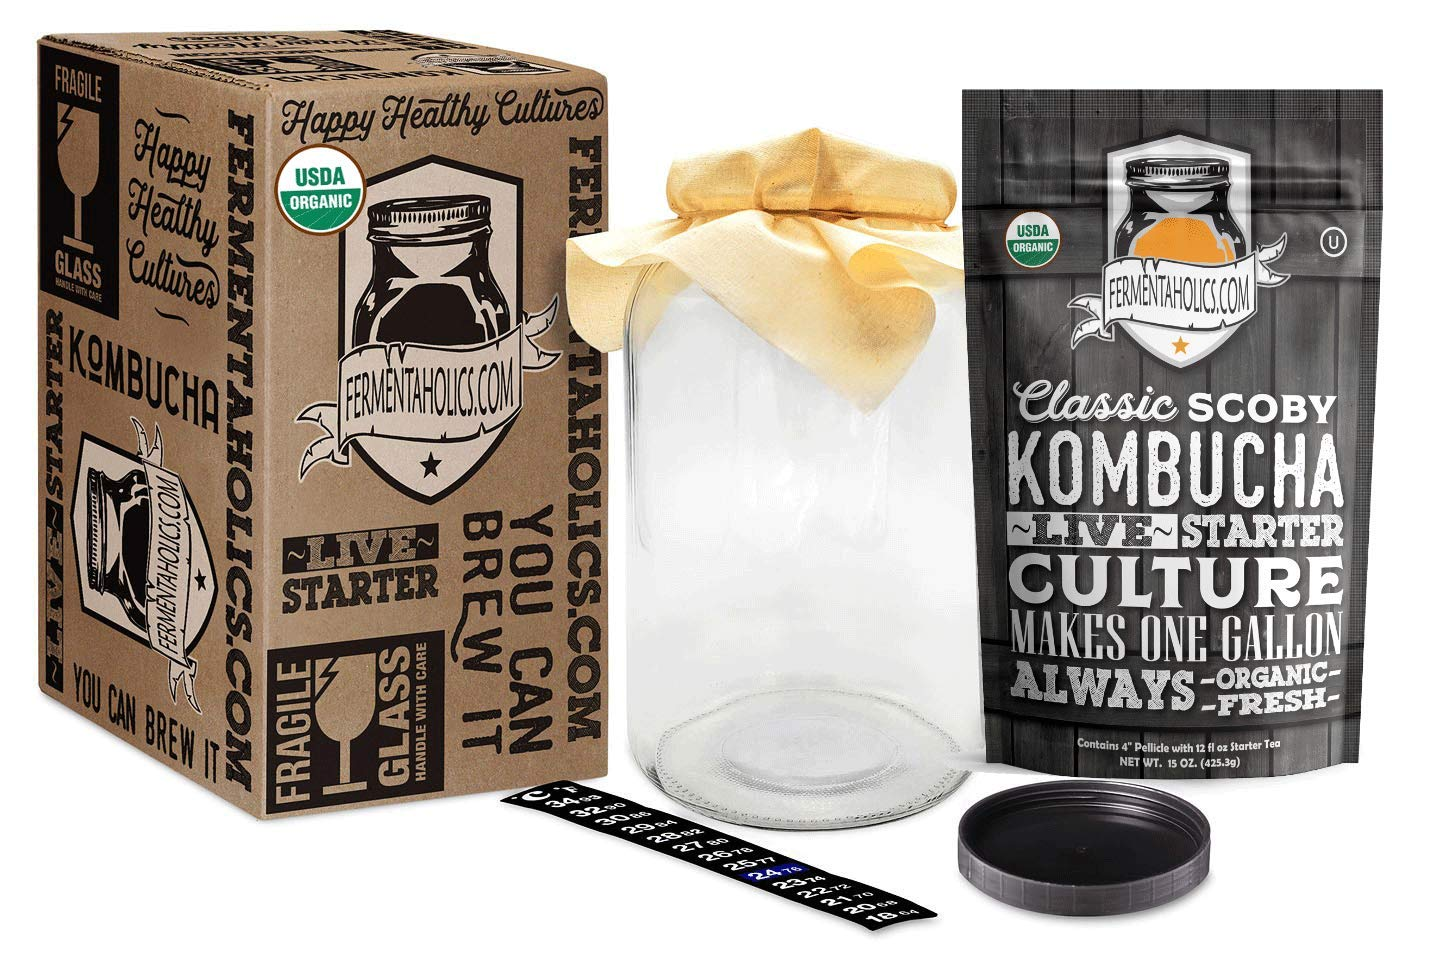 Kombucha Essentials Kit - ORGANIC SCOBY (starter culture) + 1-Gallon Glass Fermenting Jar with Breathable Cover + Rubber Band + Adhesive Thermometer - Brew kombucha at Home - D by Fermentaholics